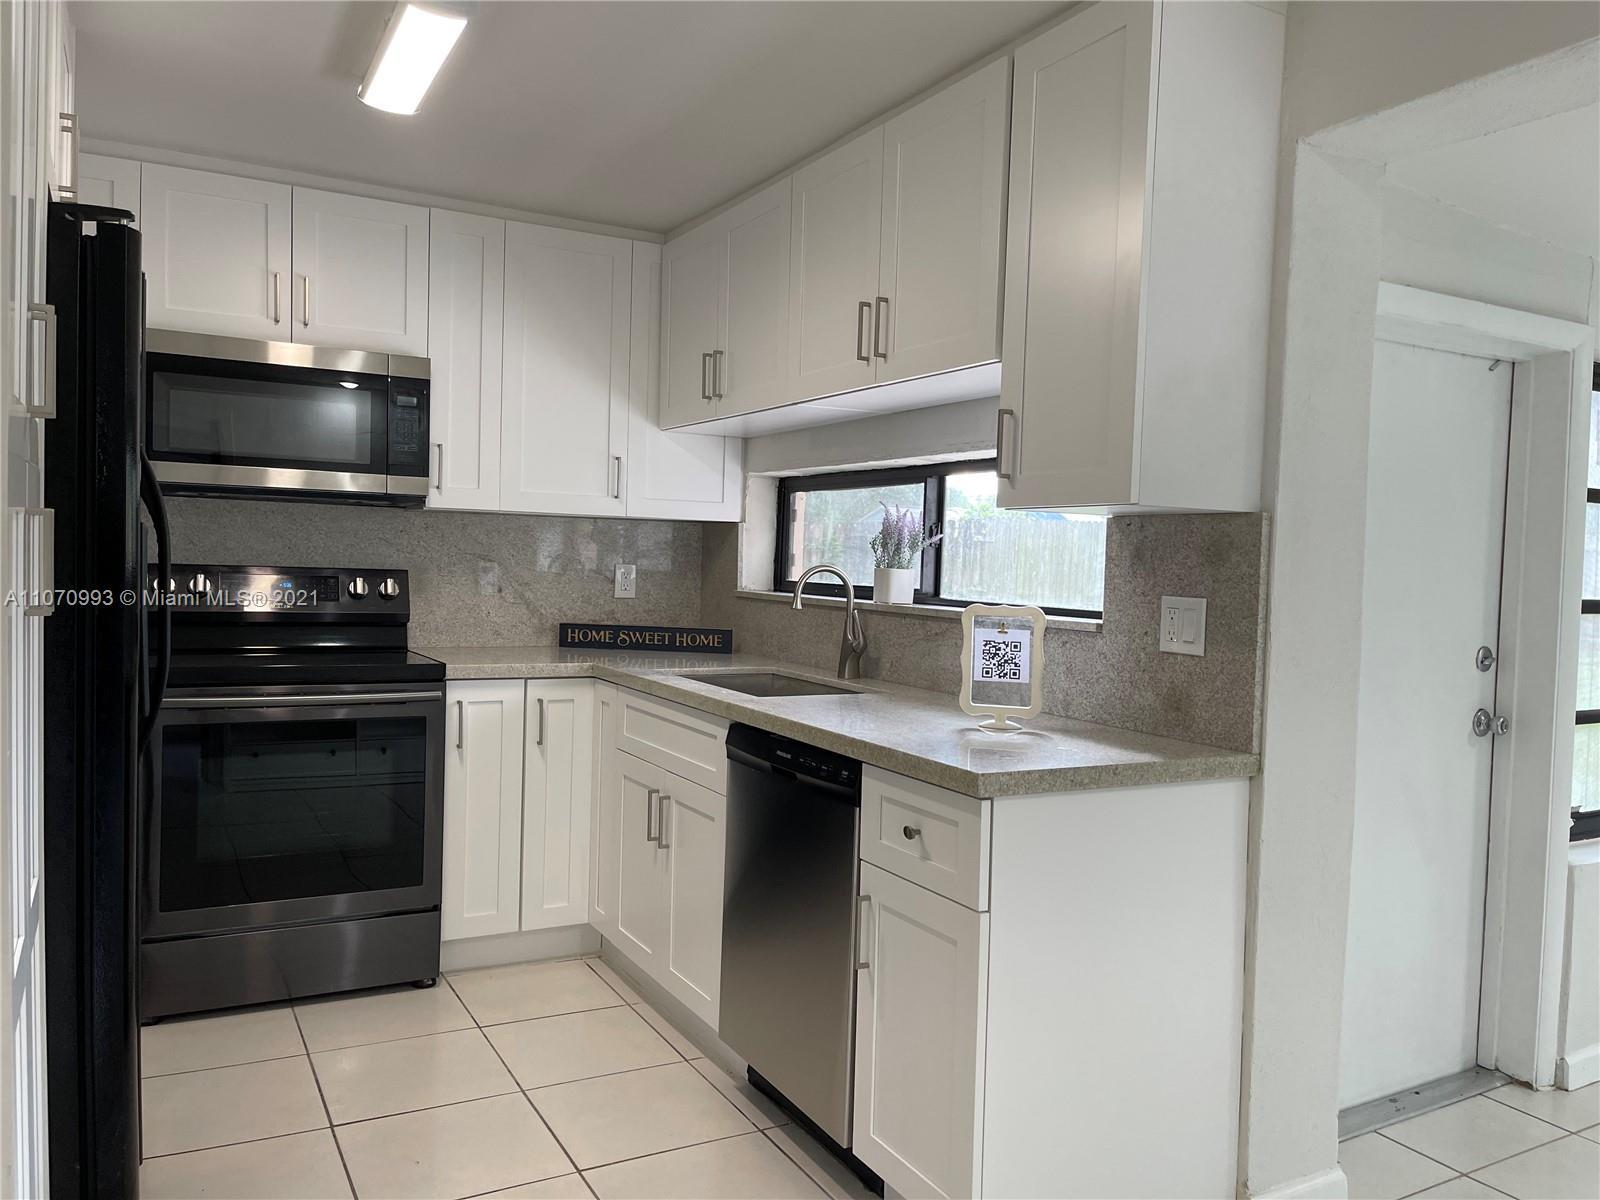 GREAT LOCATION!!!! READY FOR A NEW FAMILY TO ENJOY! Remodeled kitchen and bathroom, freshly painted,